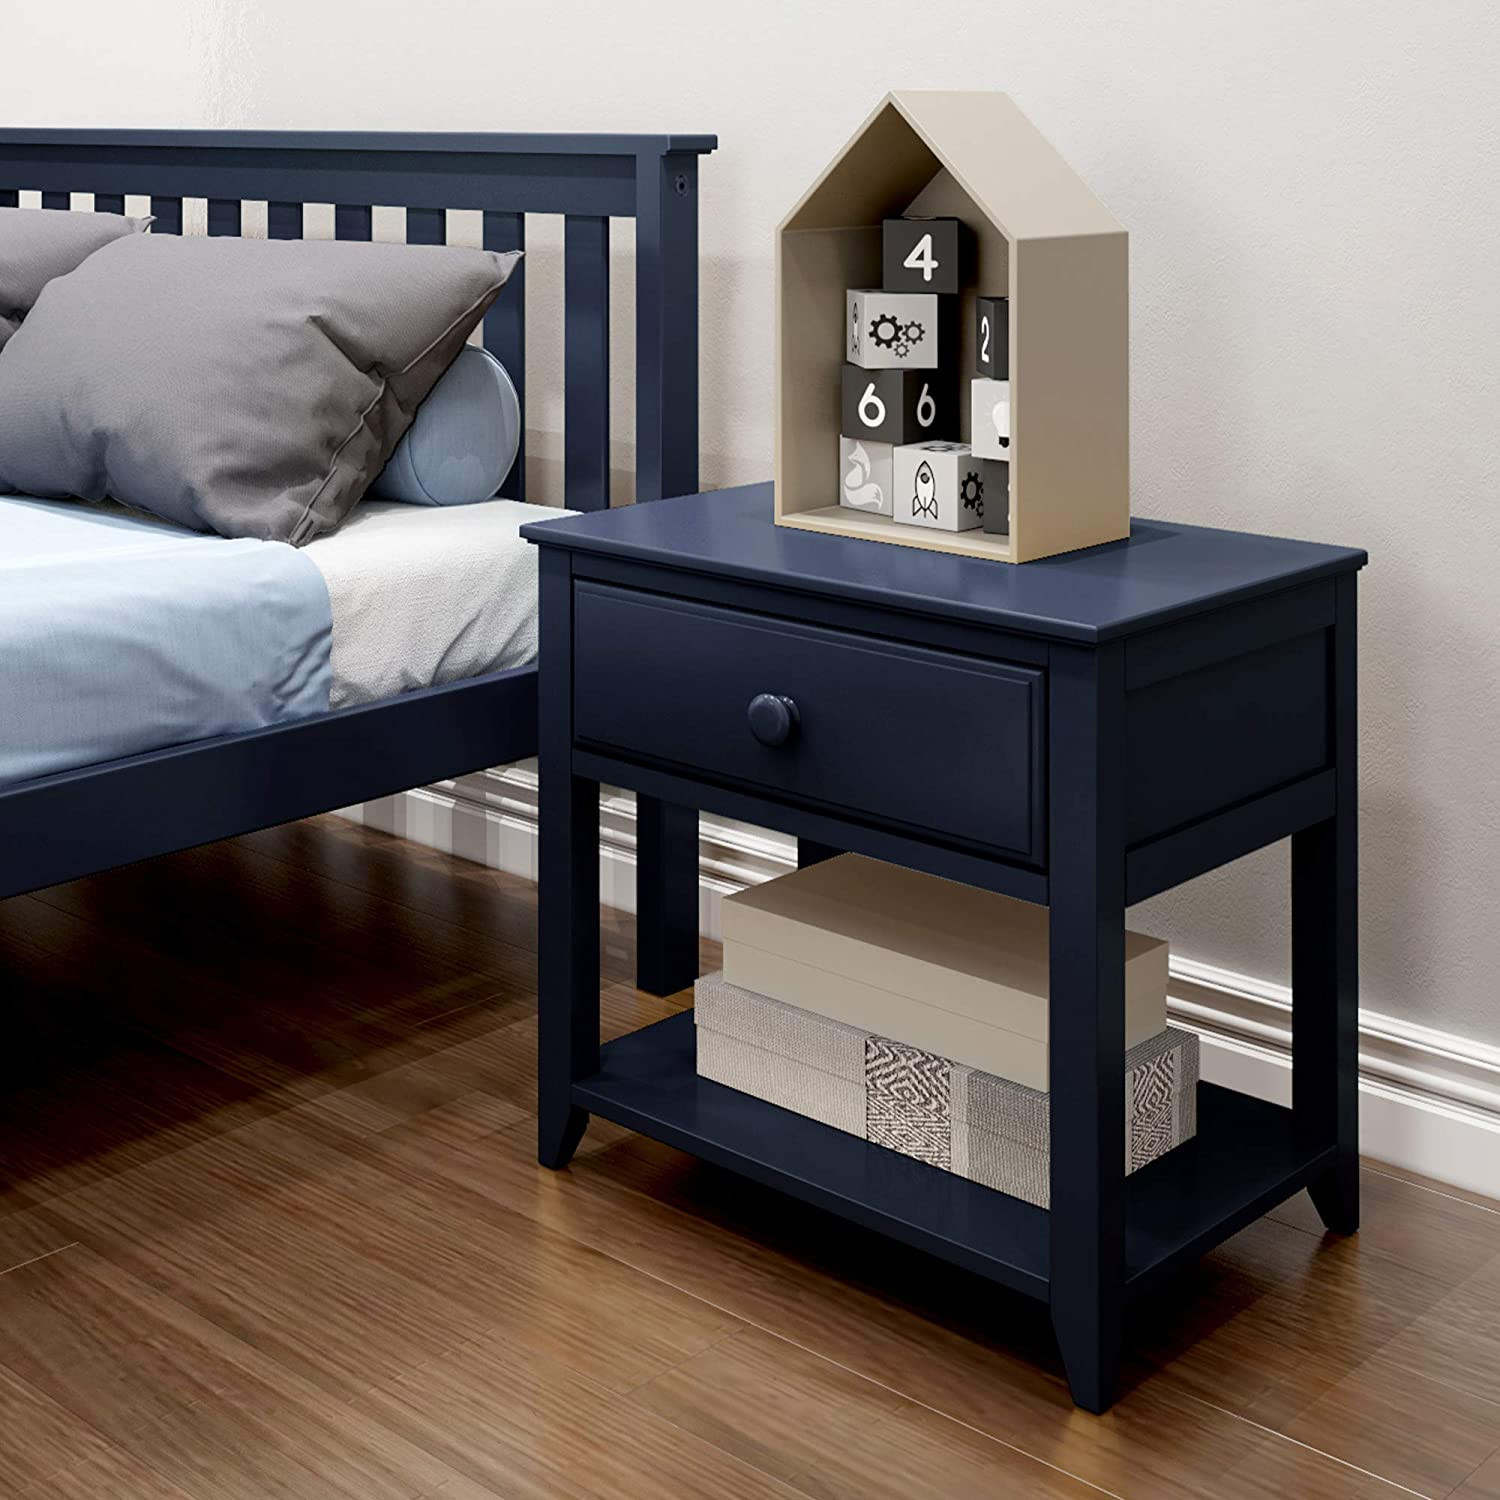 Max & Lily Nightstand with Drawer and Shelf, Blue